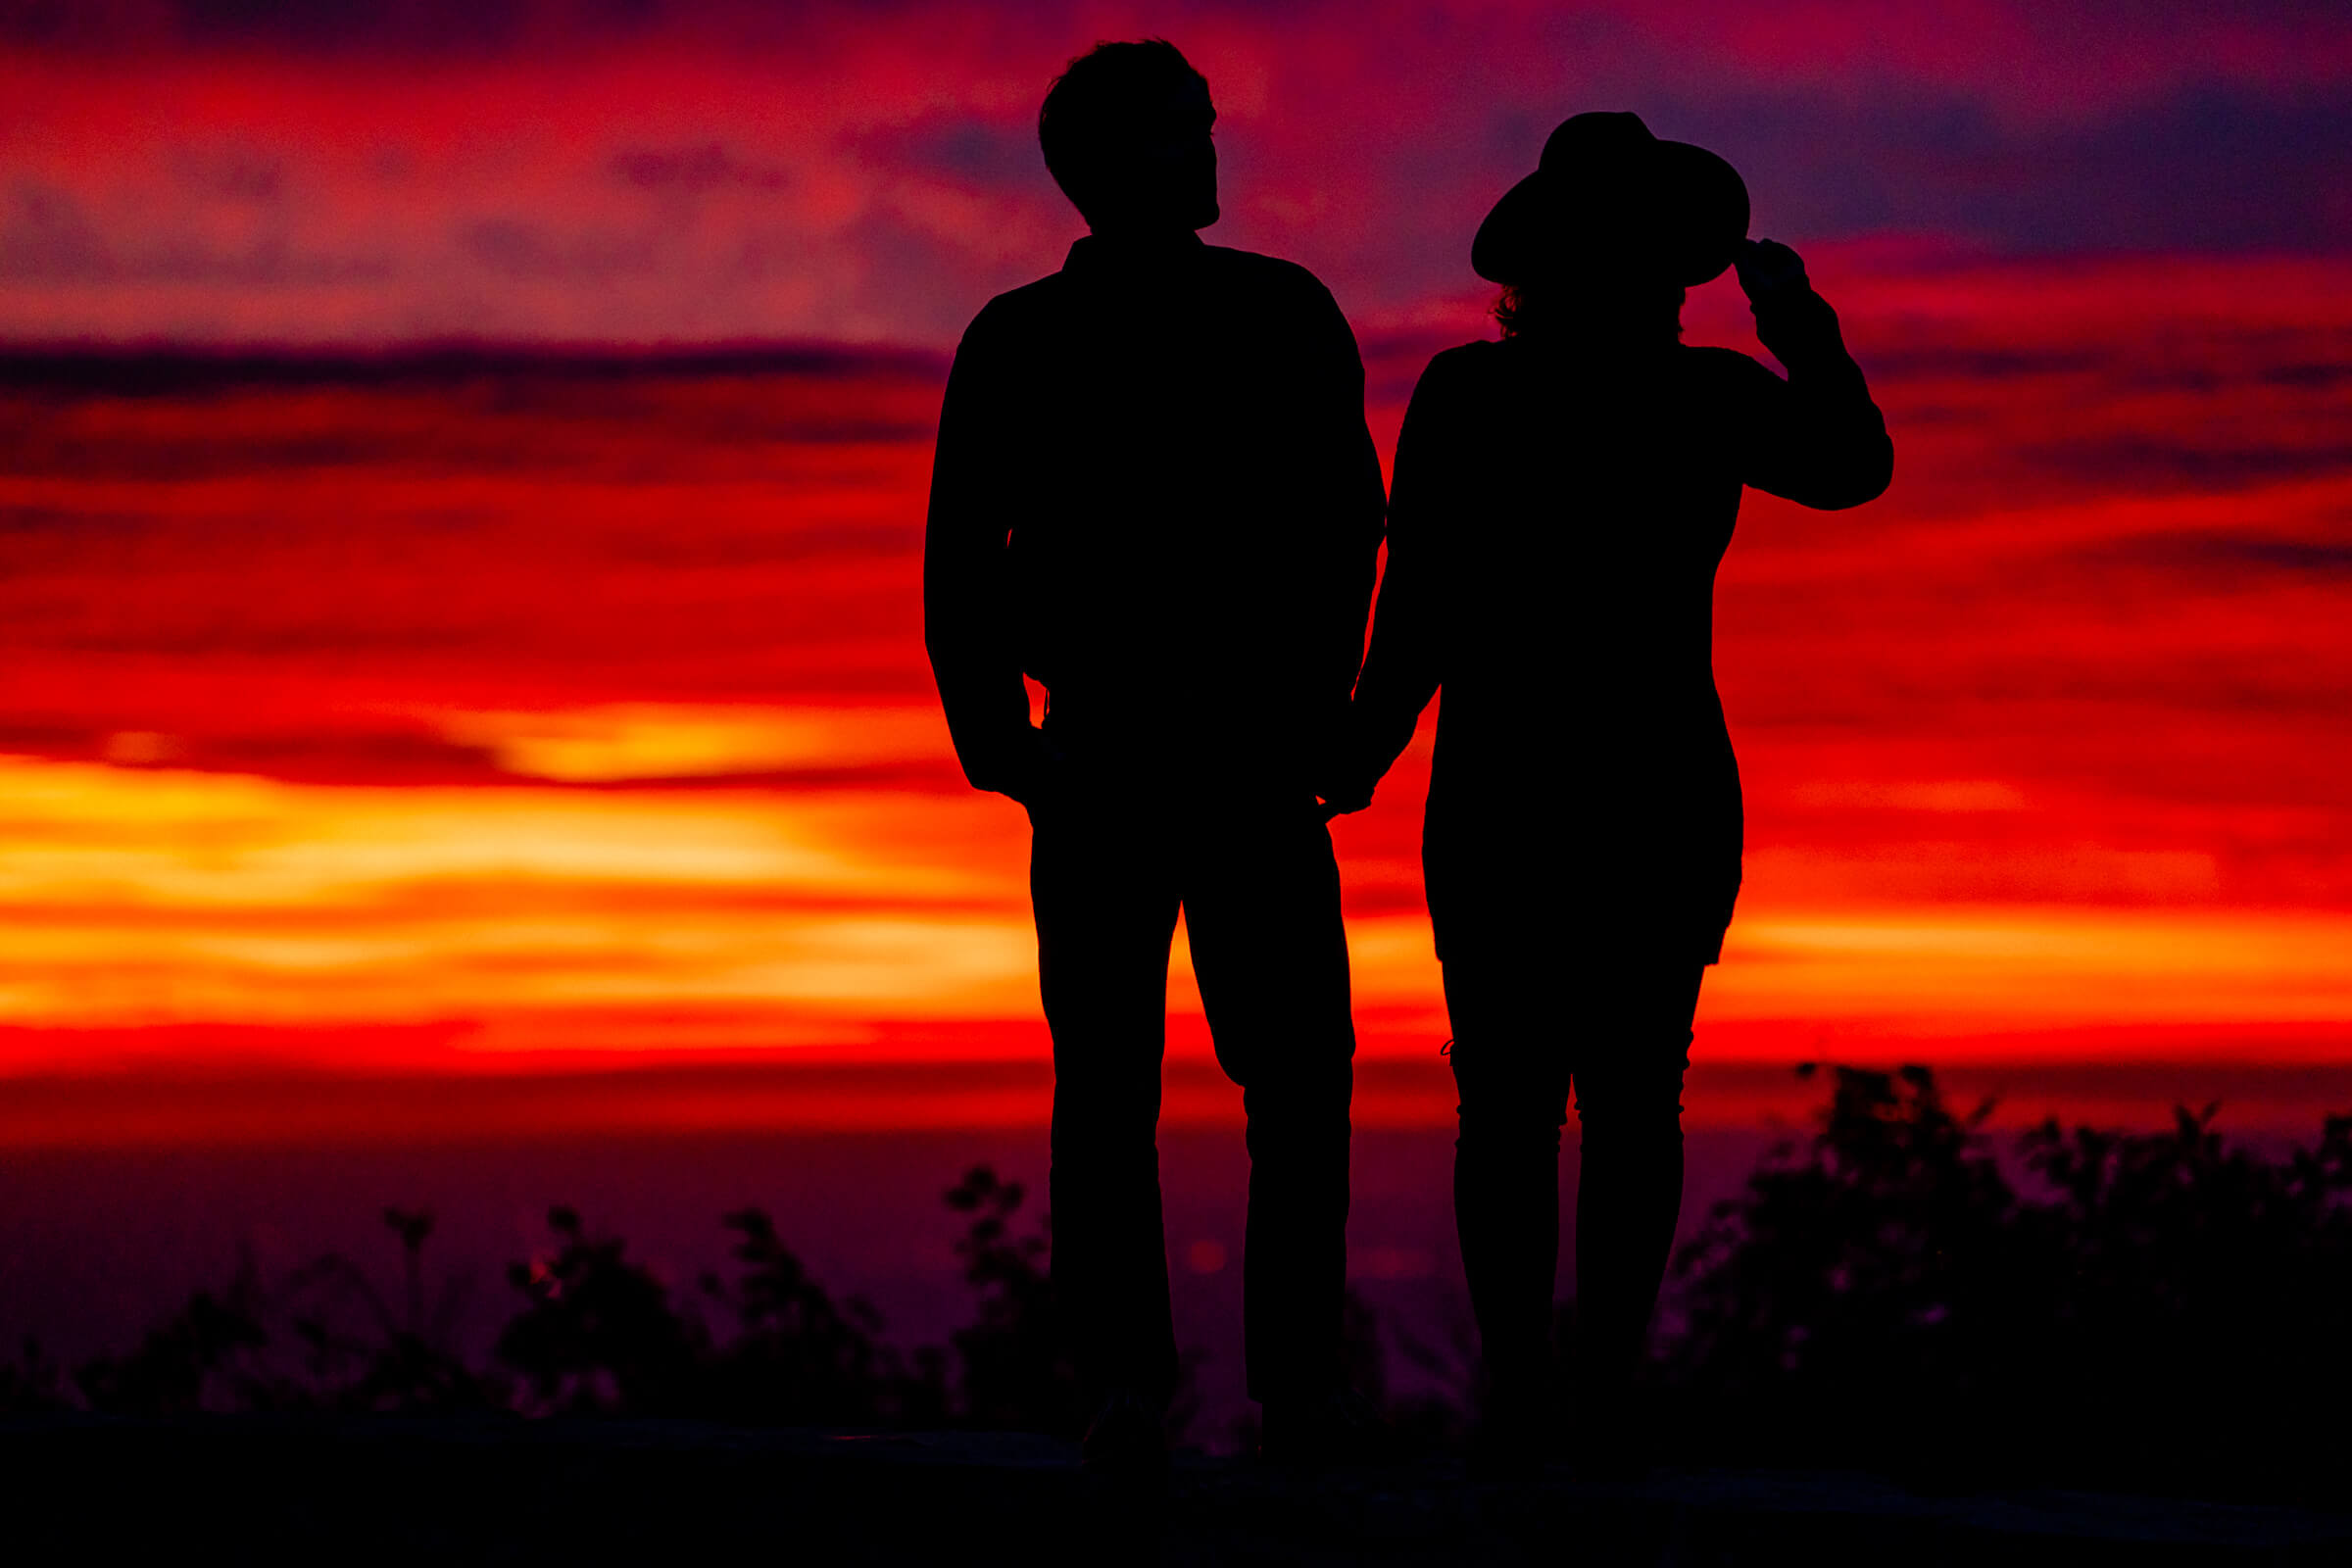 back-view-silhouette-couple-at-shenandoah-sunrise-bee-two-sweet